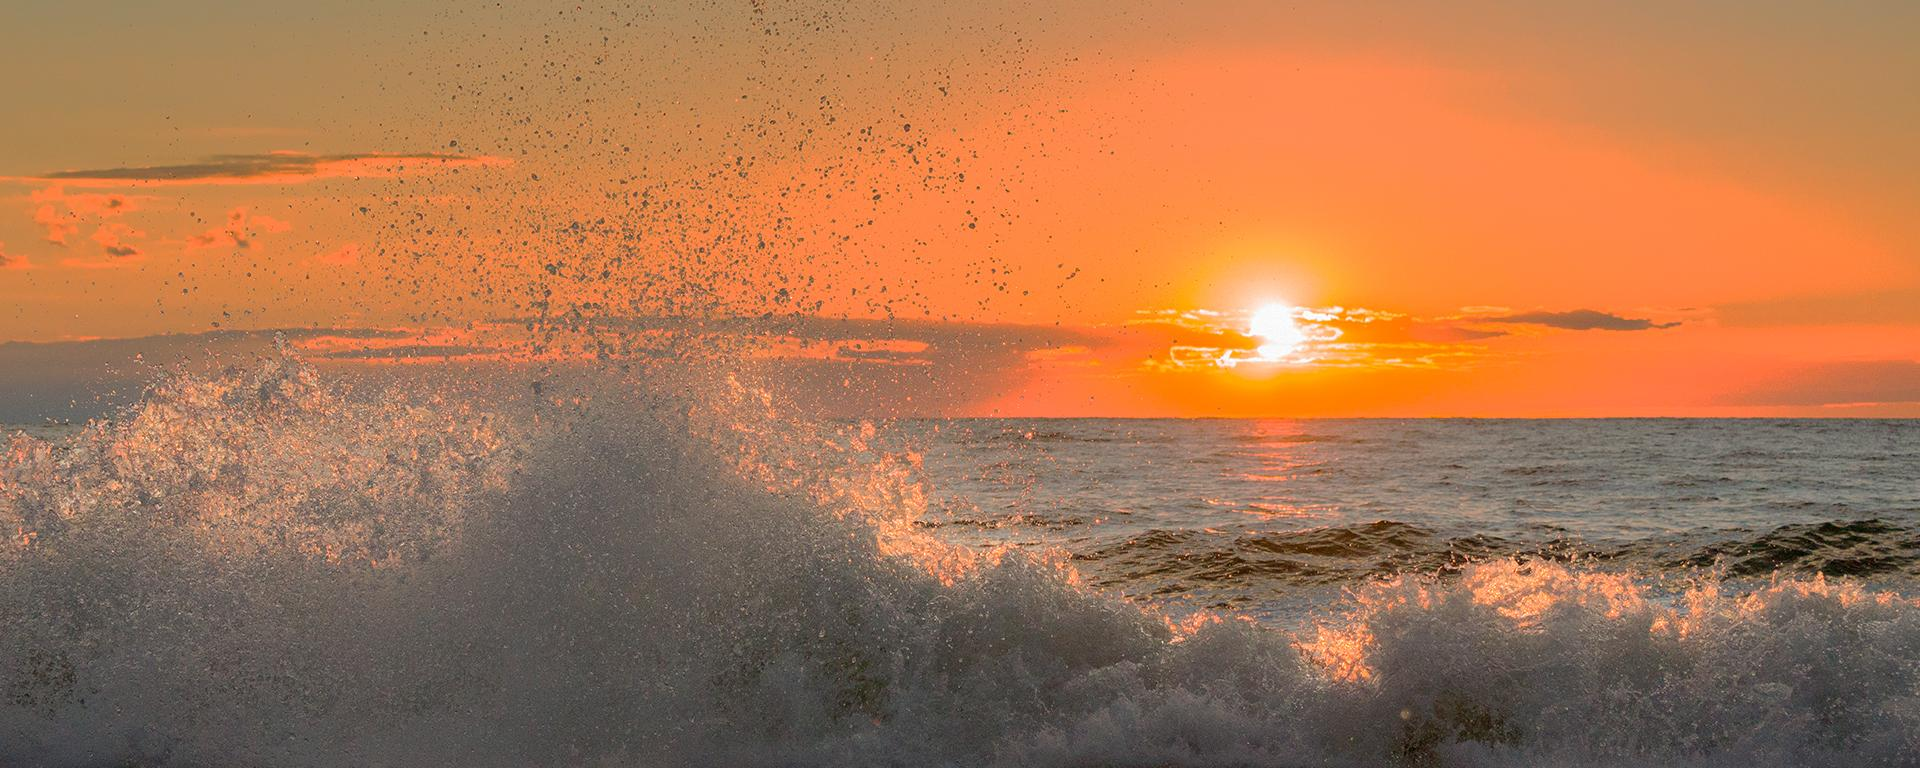 Waves on Lake Ontario in front of an orange sunset sky